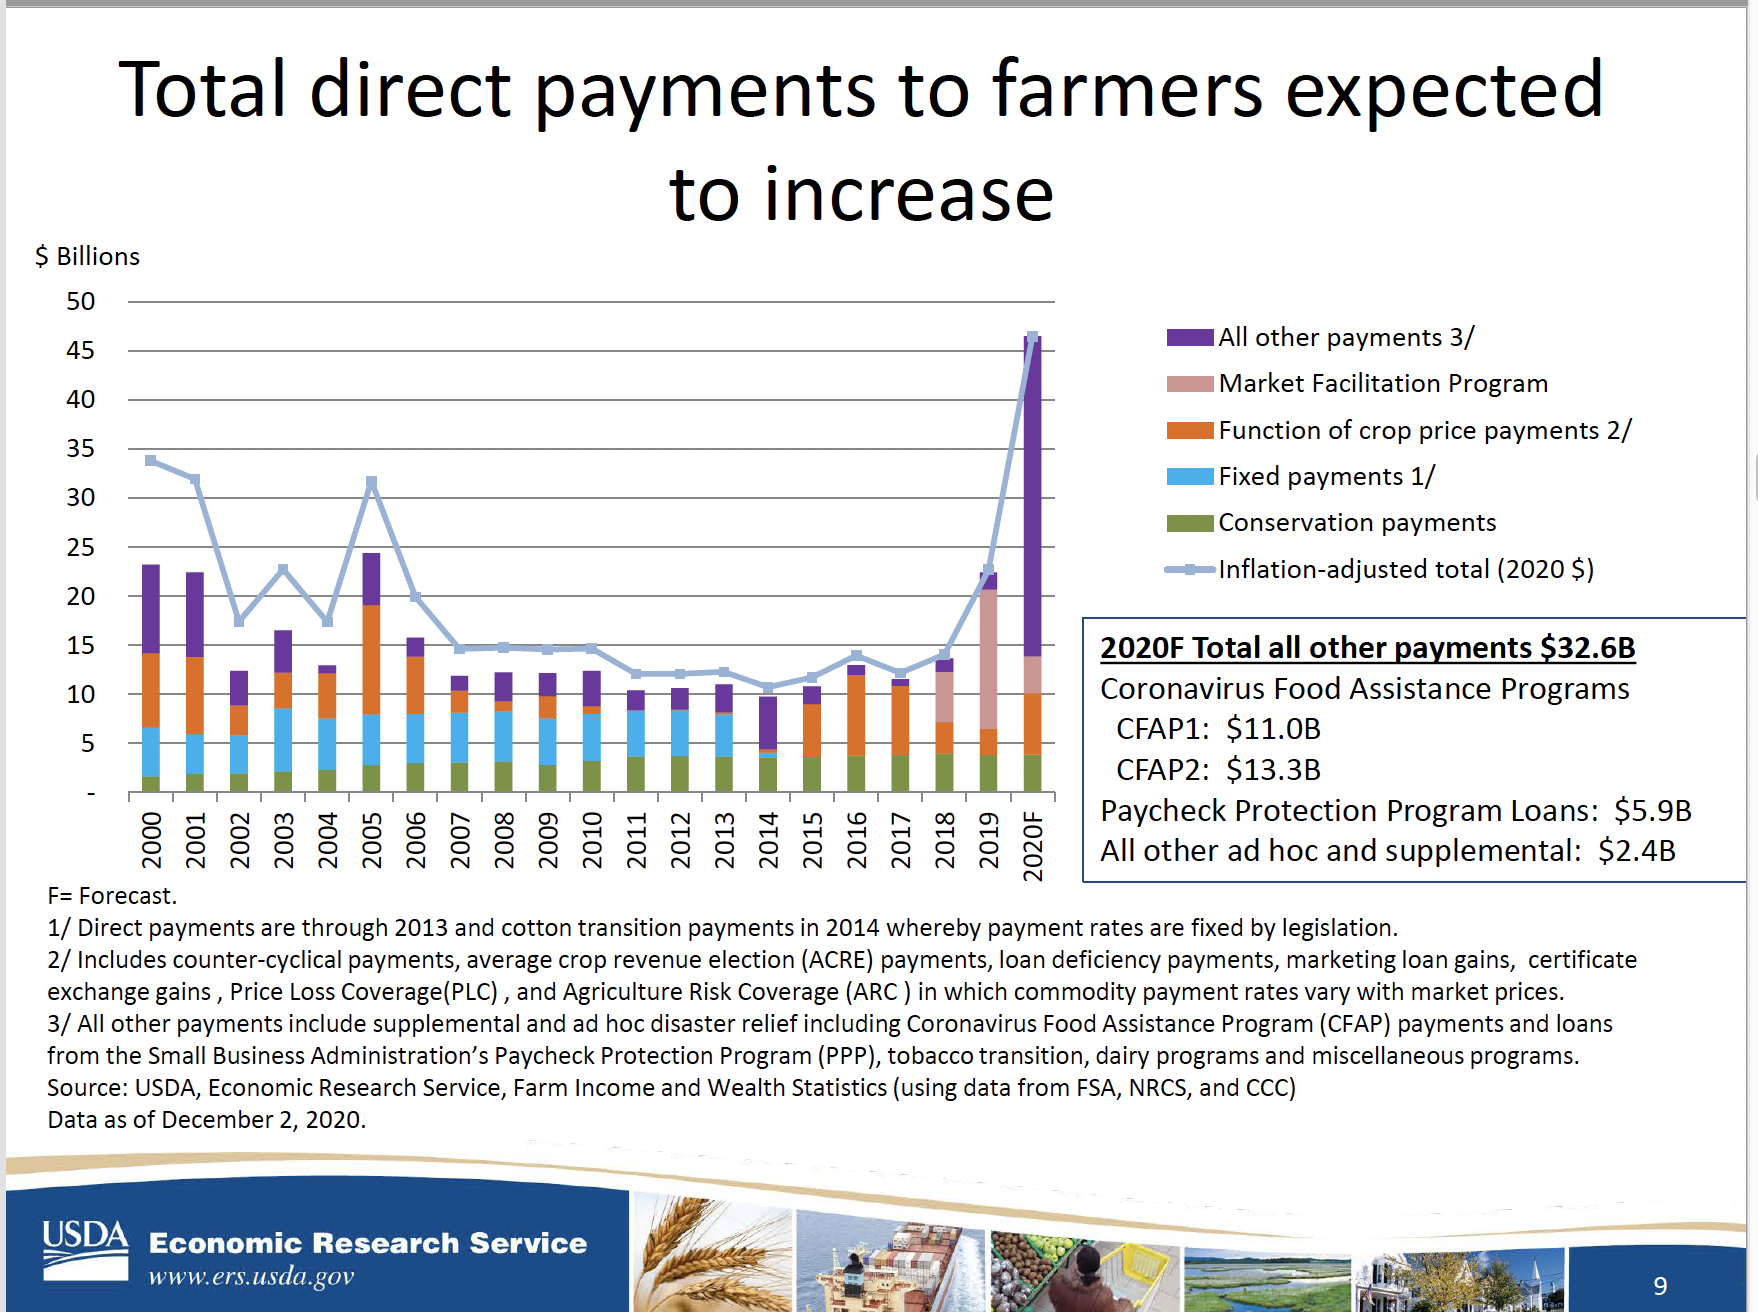 Total Direct Payments To Farmers